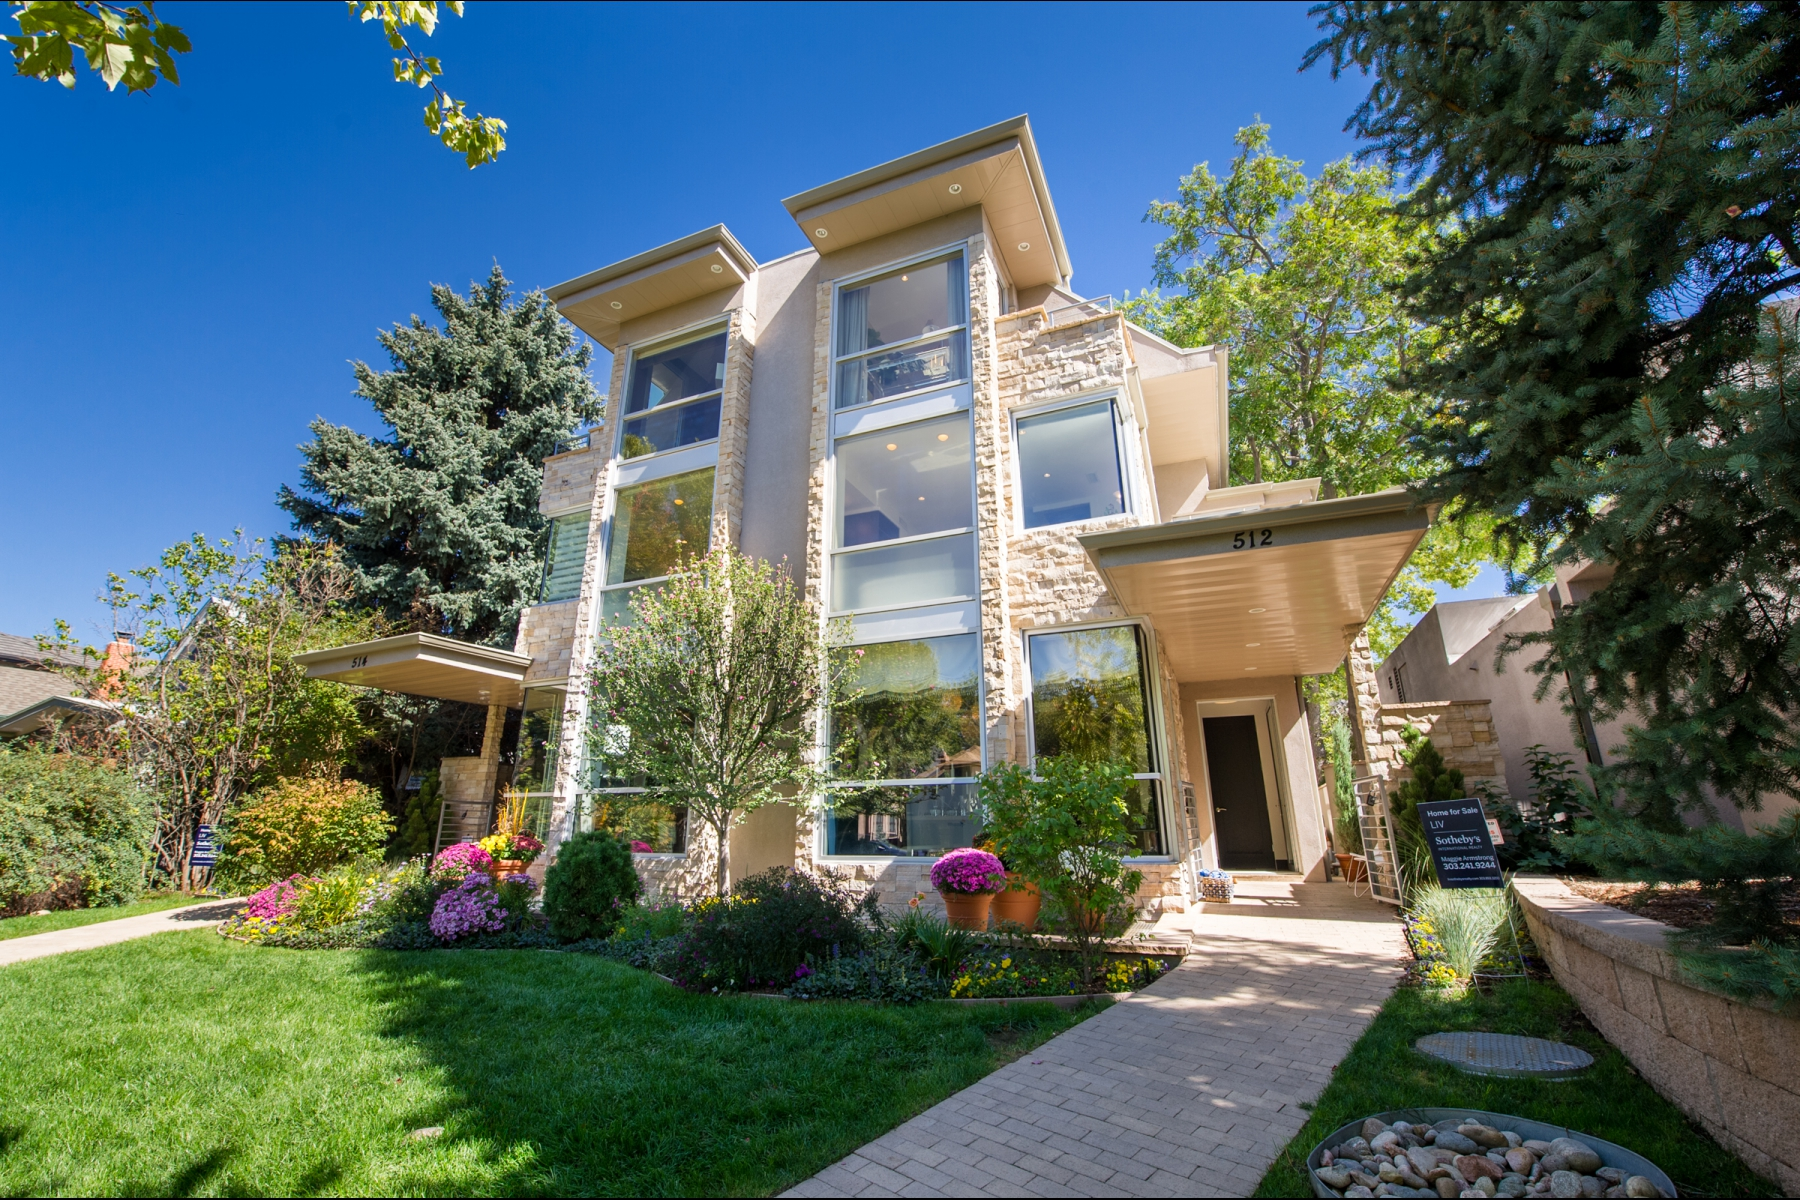 Townhouse for Sale at 2015 Designer Showhouse Home 512 Cook Street Cherry Creek, Denver, Colorado 80206 United States